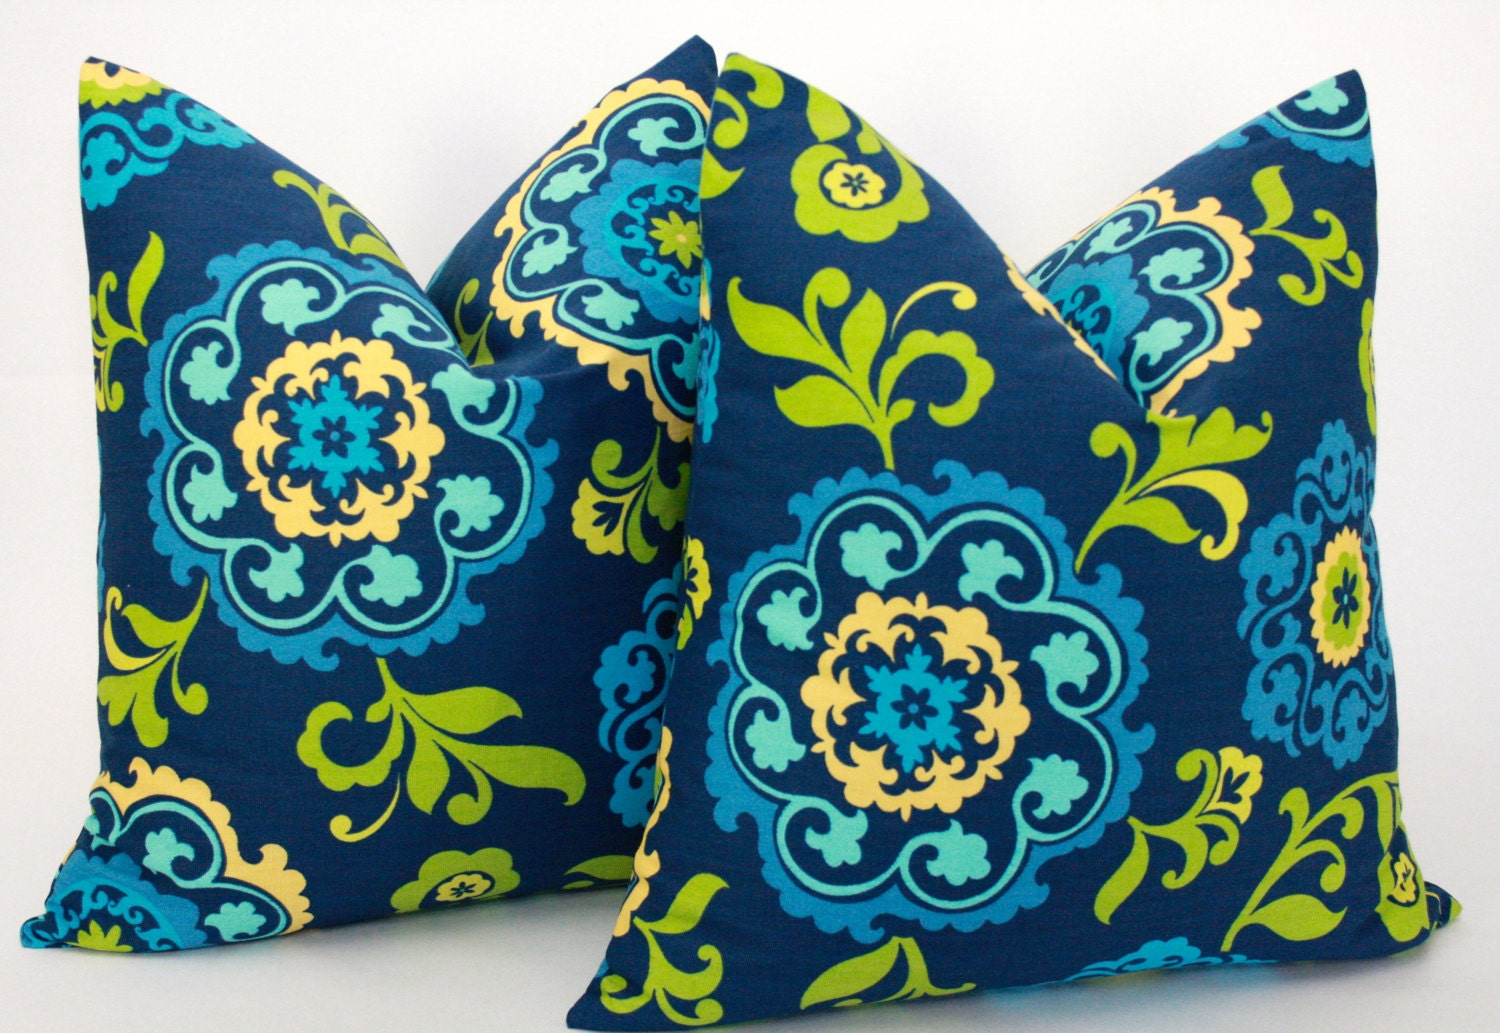 Navy Blue And Green Throw Pillows : Navy Blue and Lime Green Pillow Covers 20 x 20 inches by StyleItUp